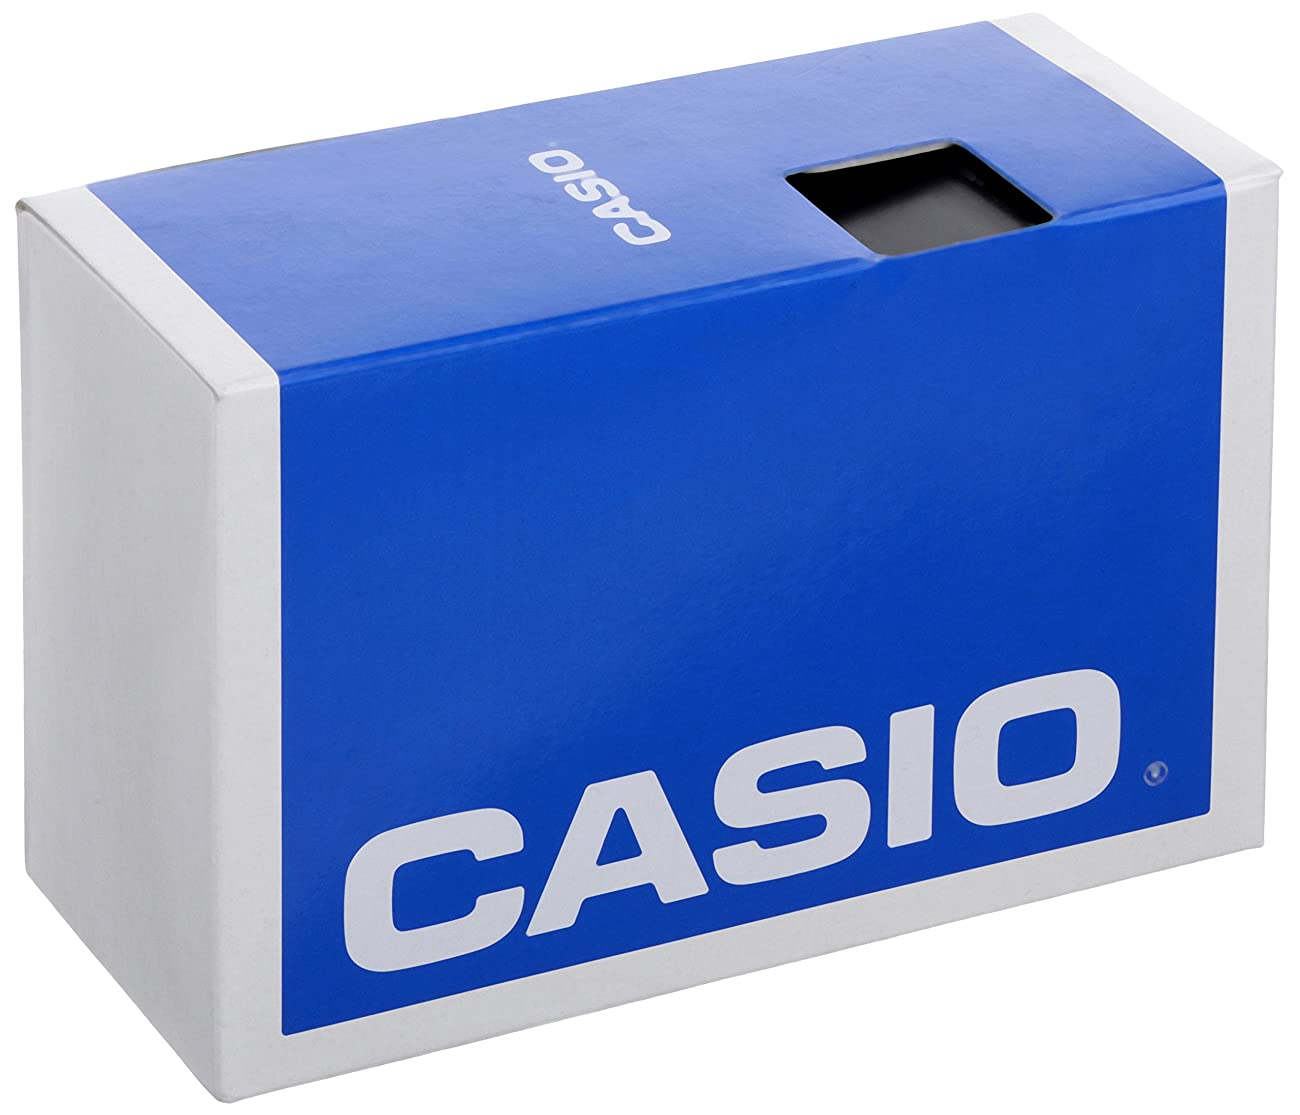 Casio F91W-1 Classic Resin Strap Digital Sport Watch 2